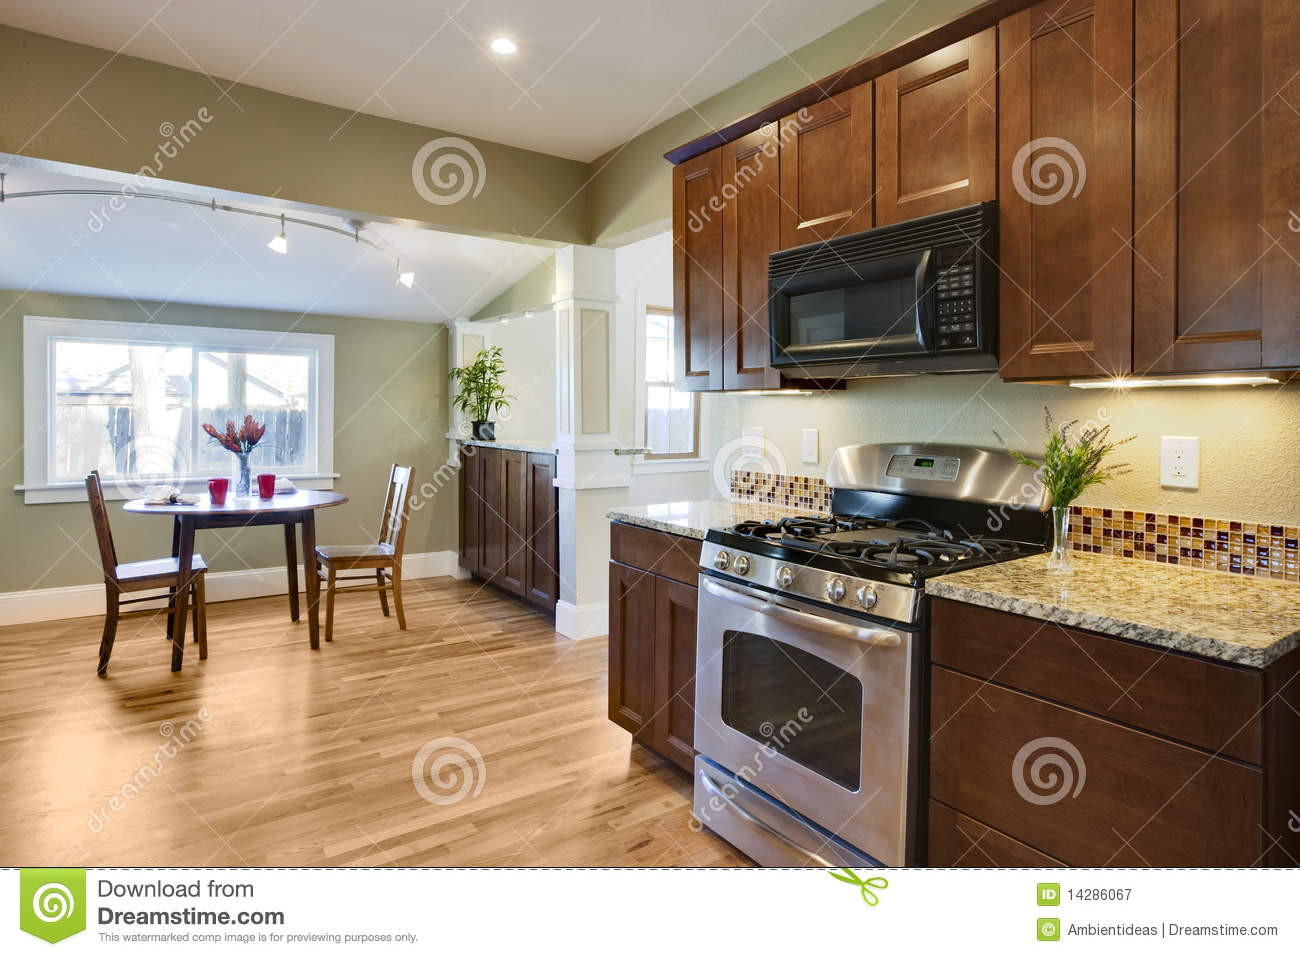 Wood Floors For Kitchens Remodel Kitchen With Wood Flooring Royalty Free Stock Photography